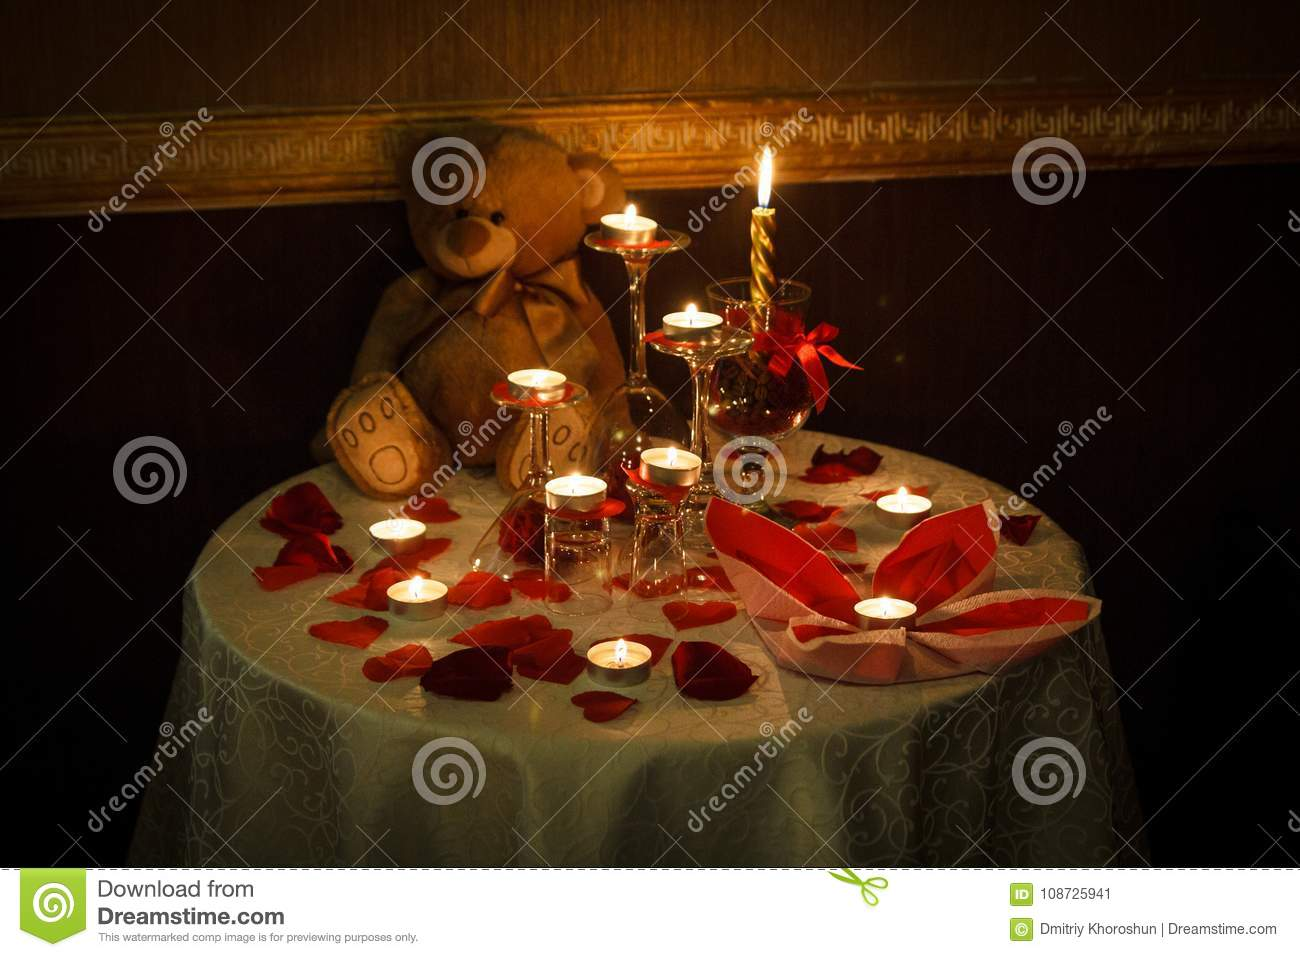 Romantic room decoration with candles